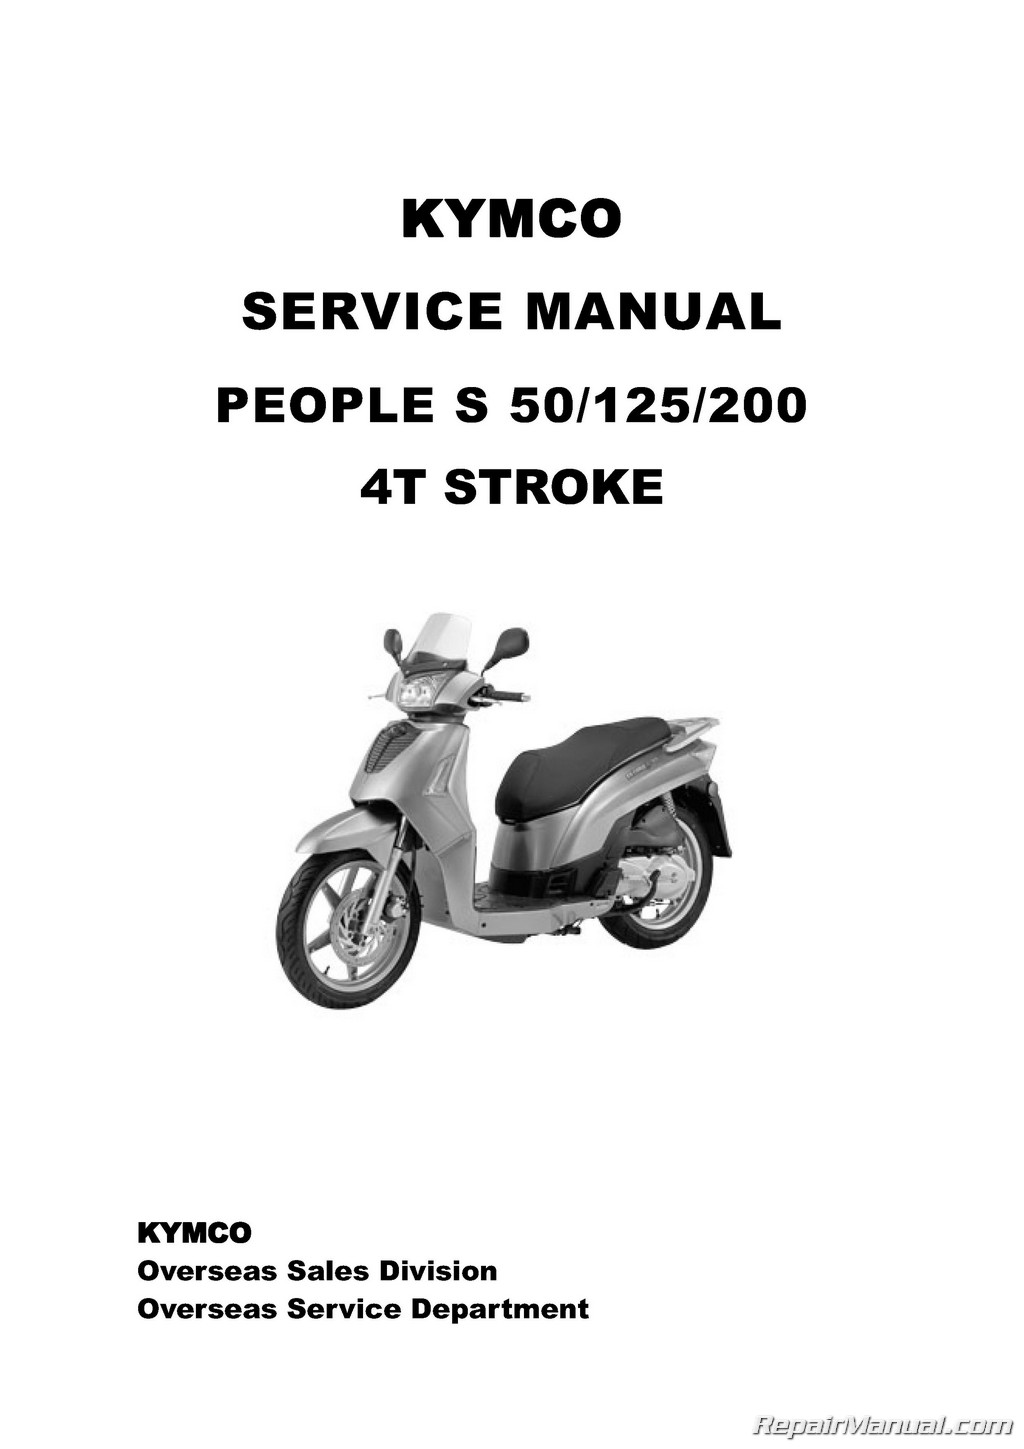 Kymco People S Scooter Service Manual Printed By Cyclepedia border=